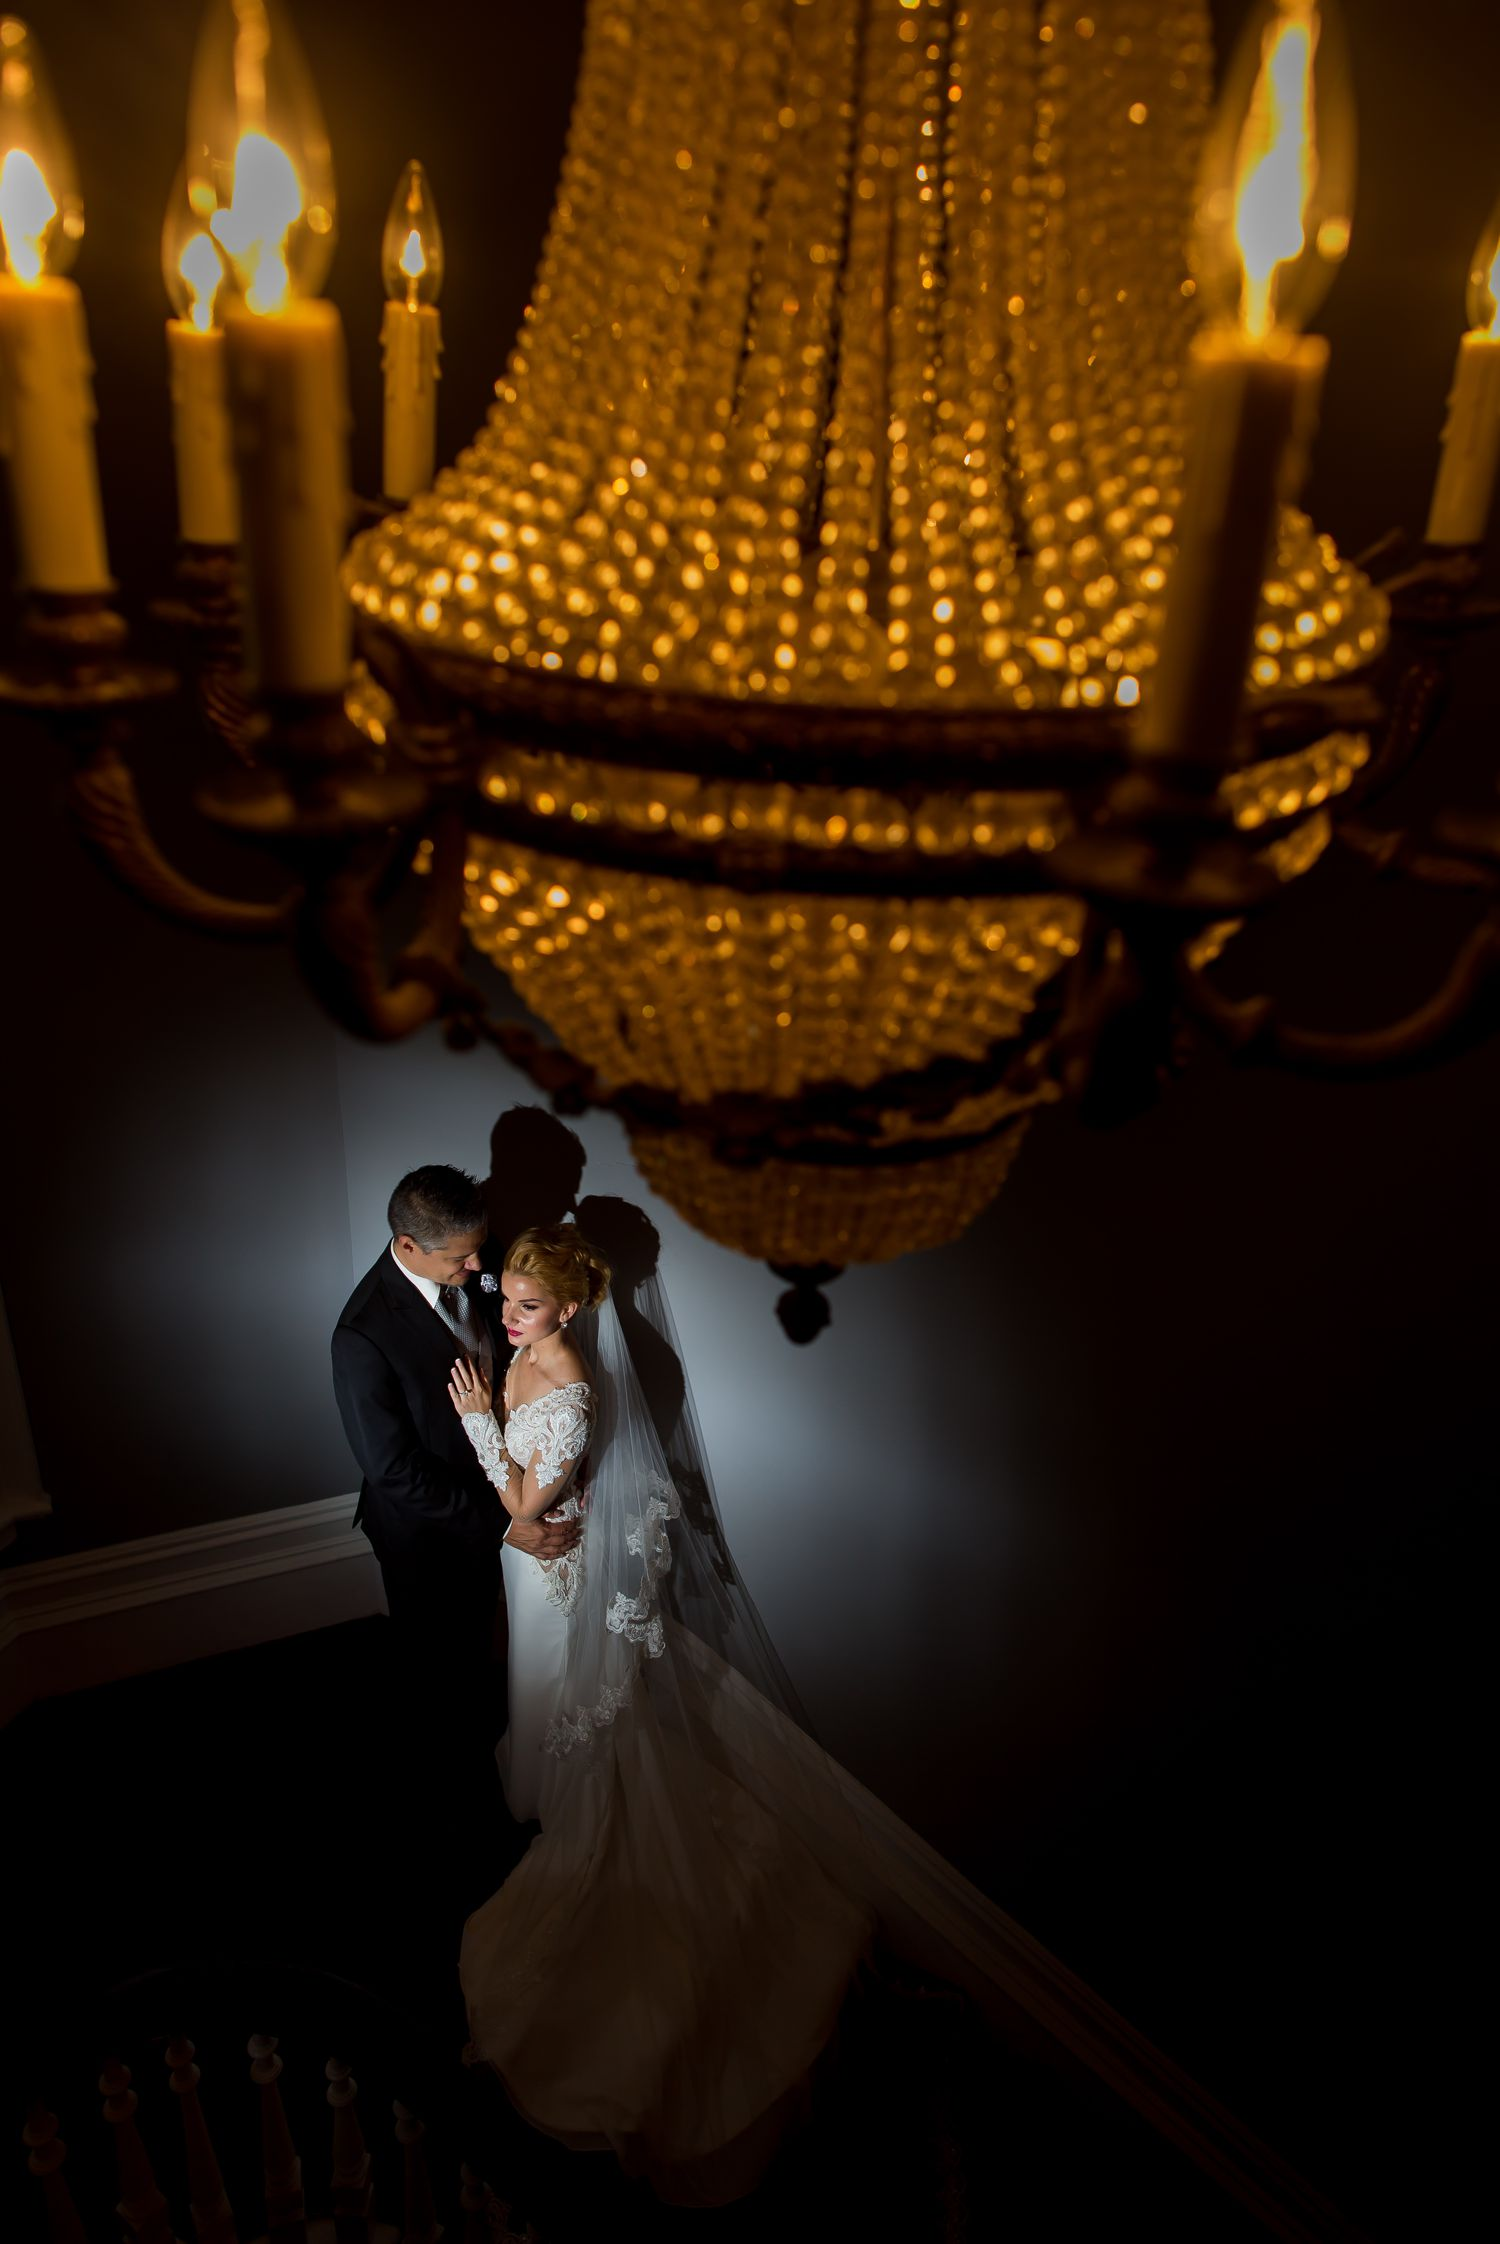 A night time portrait of the bride and groom after their wedding reception at Le Cordon Bleu